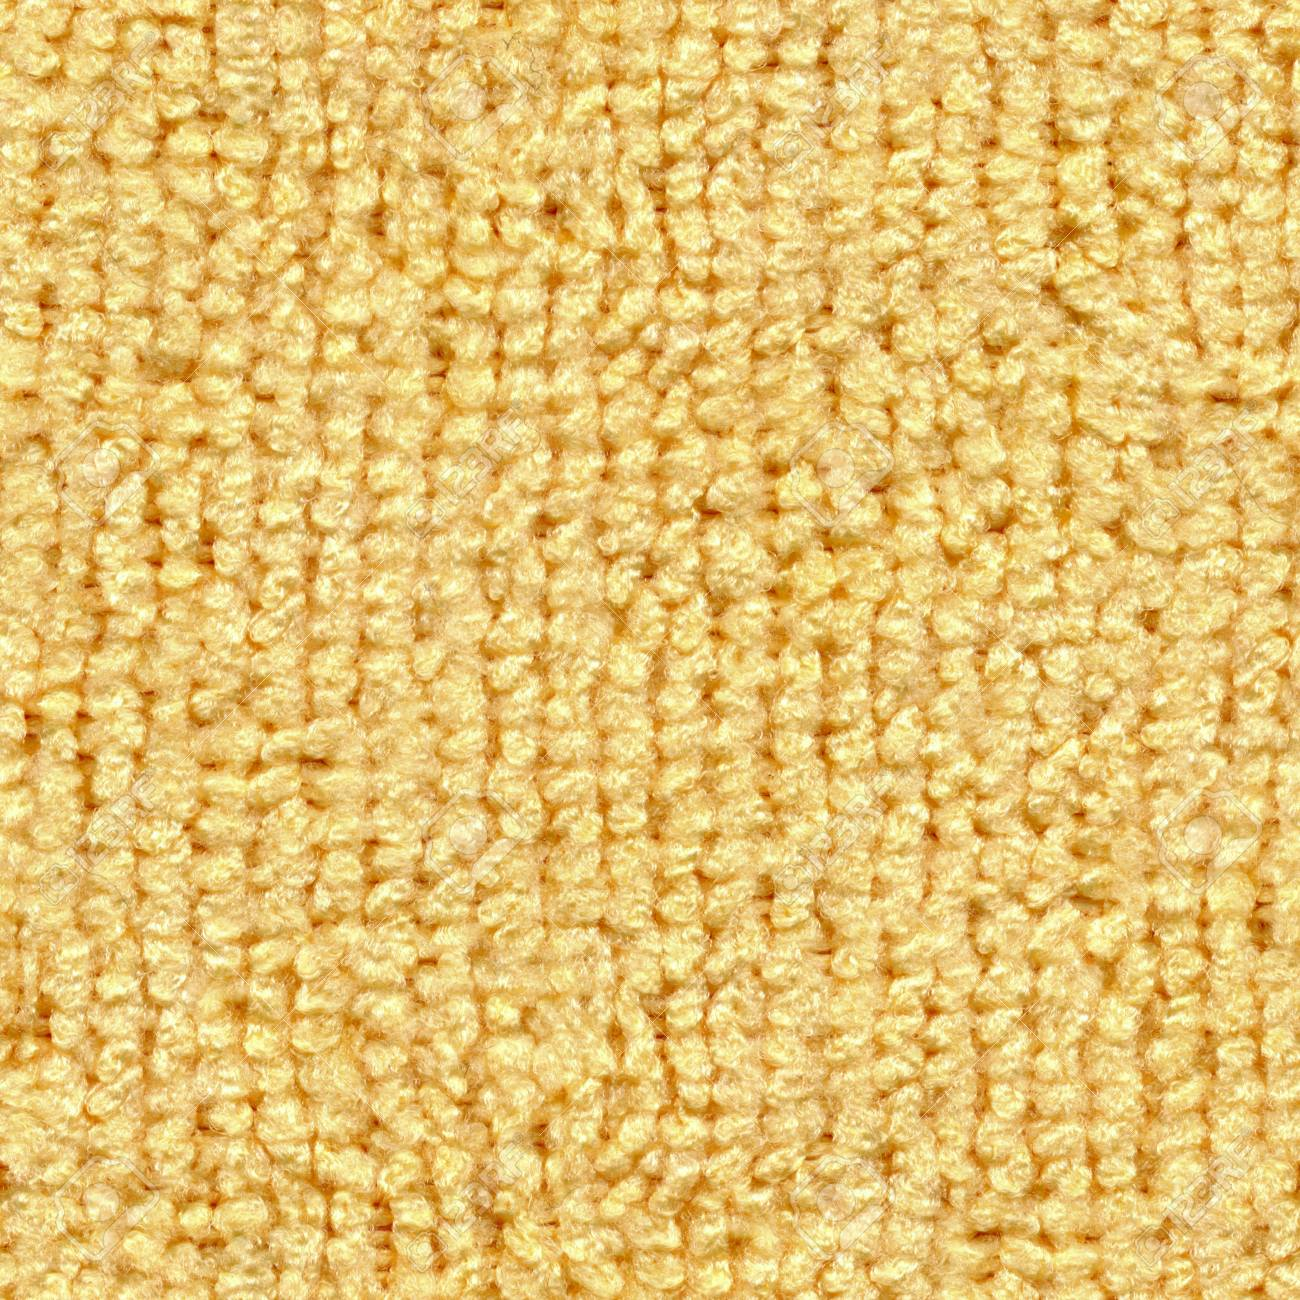 Pile Knitted Fabric